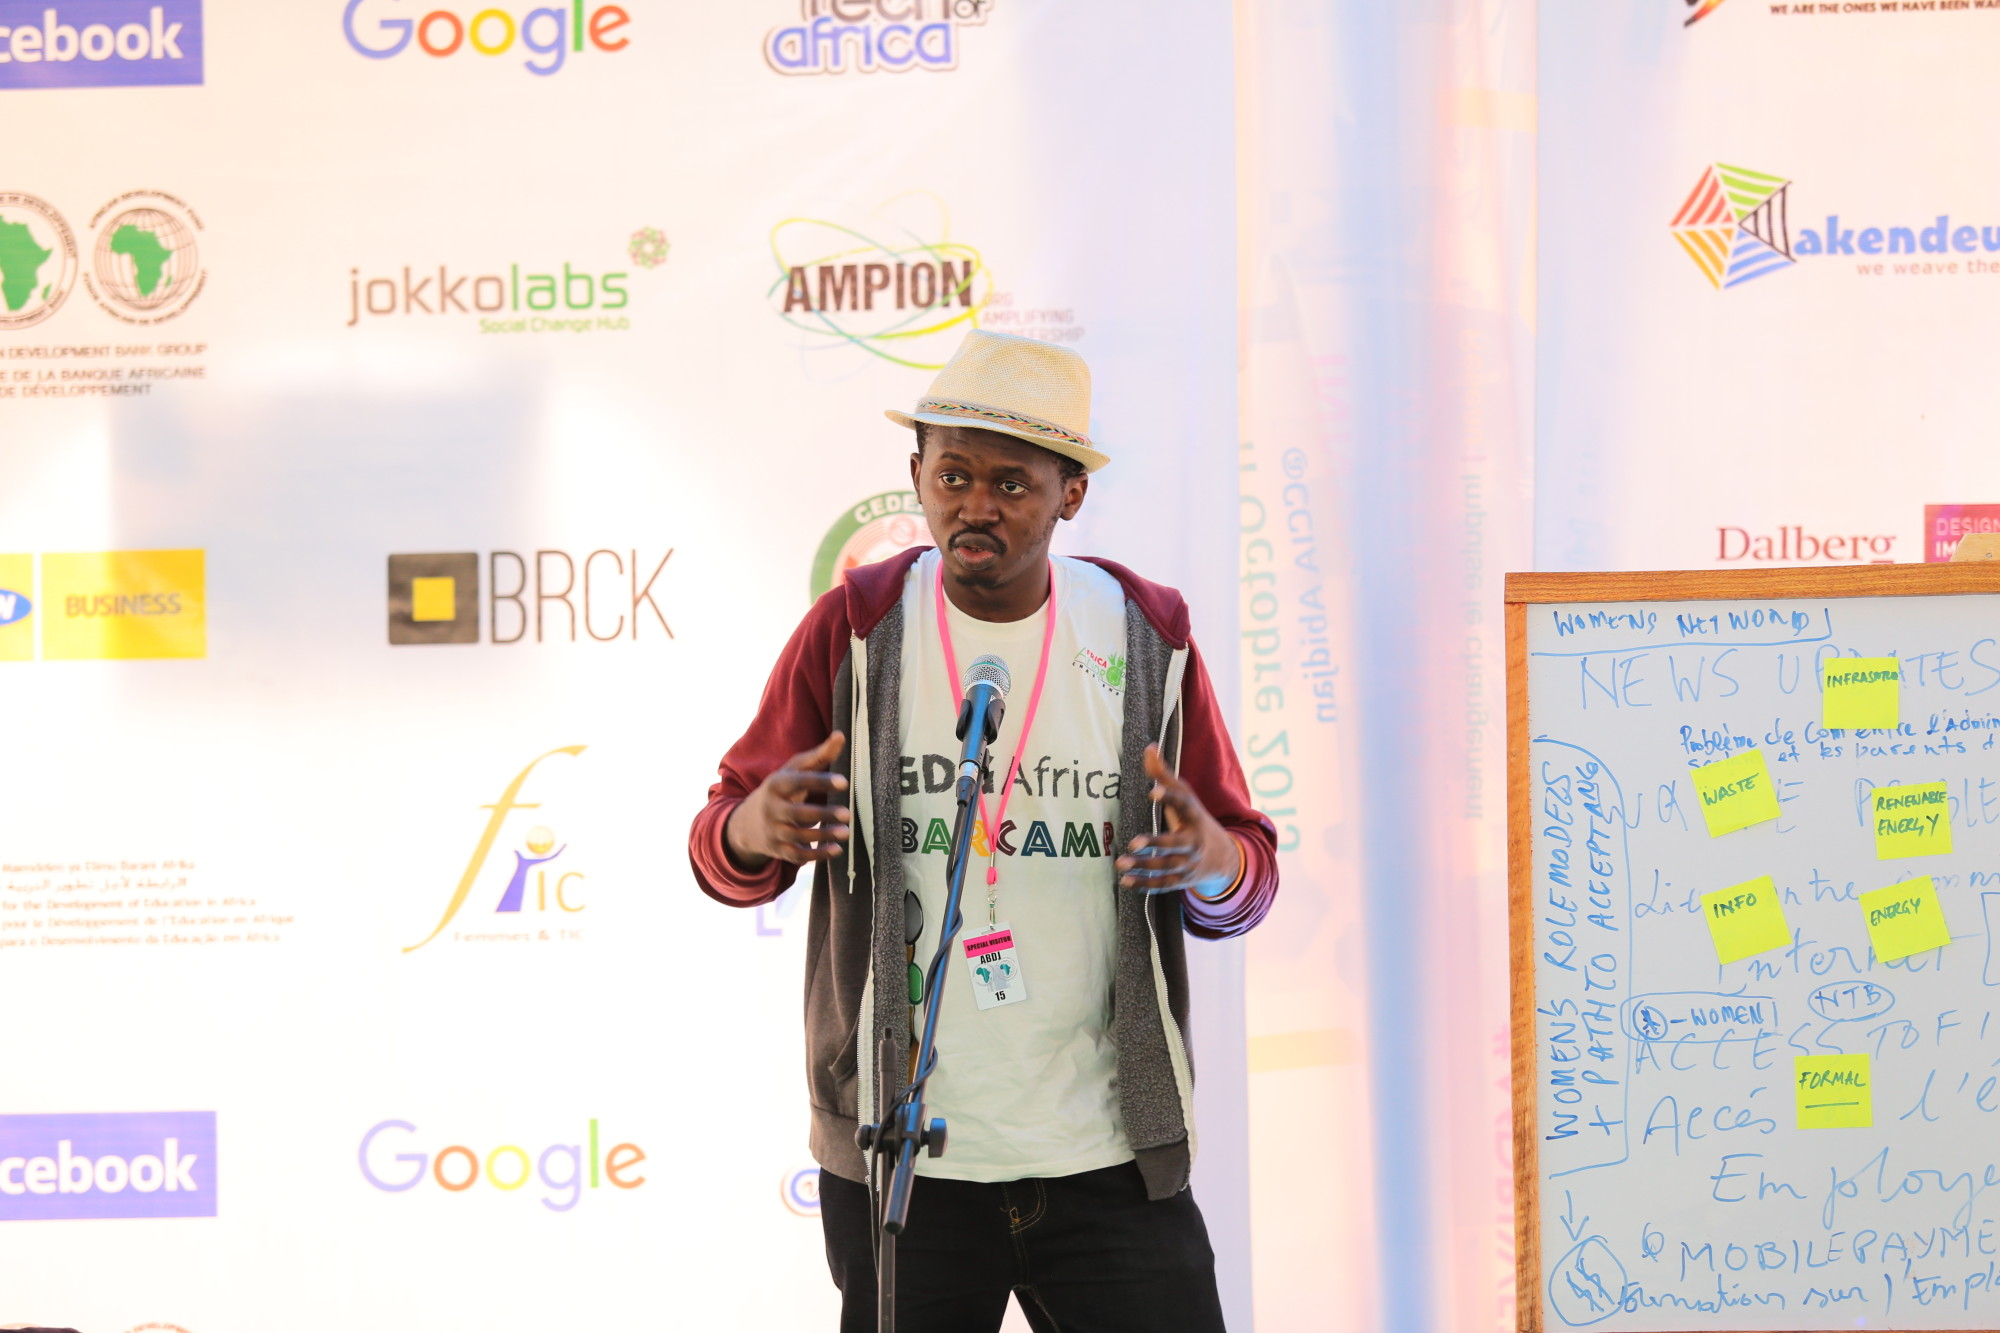 Bacely Yorobi shares challenges at the AfDB Innovation Weekend, Oct 2015 Photo: Niti Bhan